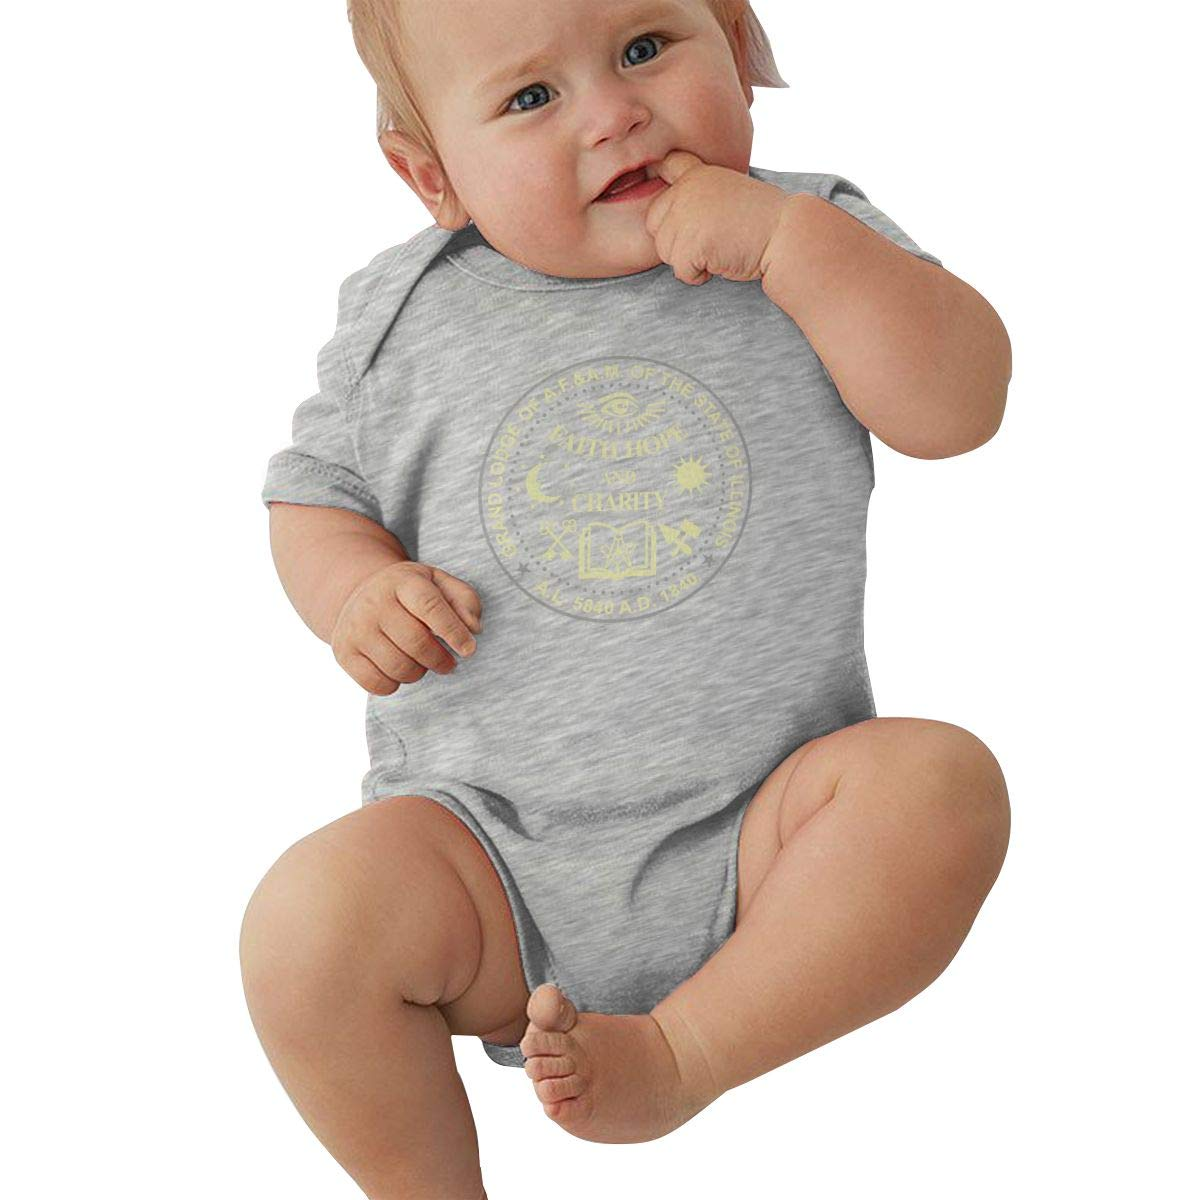 Dfenere Freemason Masonic Logo Retro Newborn Baby Short Sleeve Bodysuit Romper Infant Summer Clothing Black